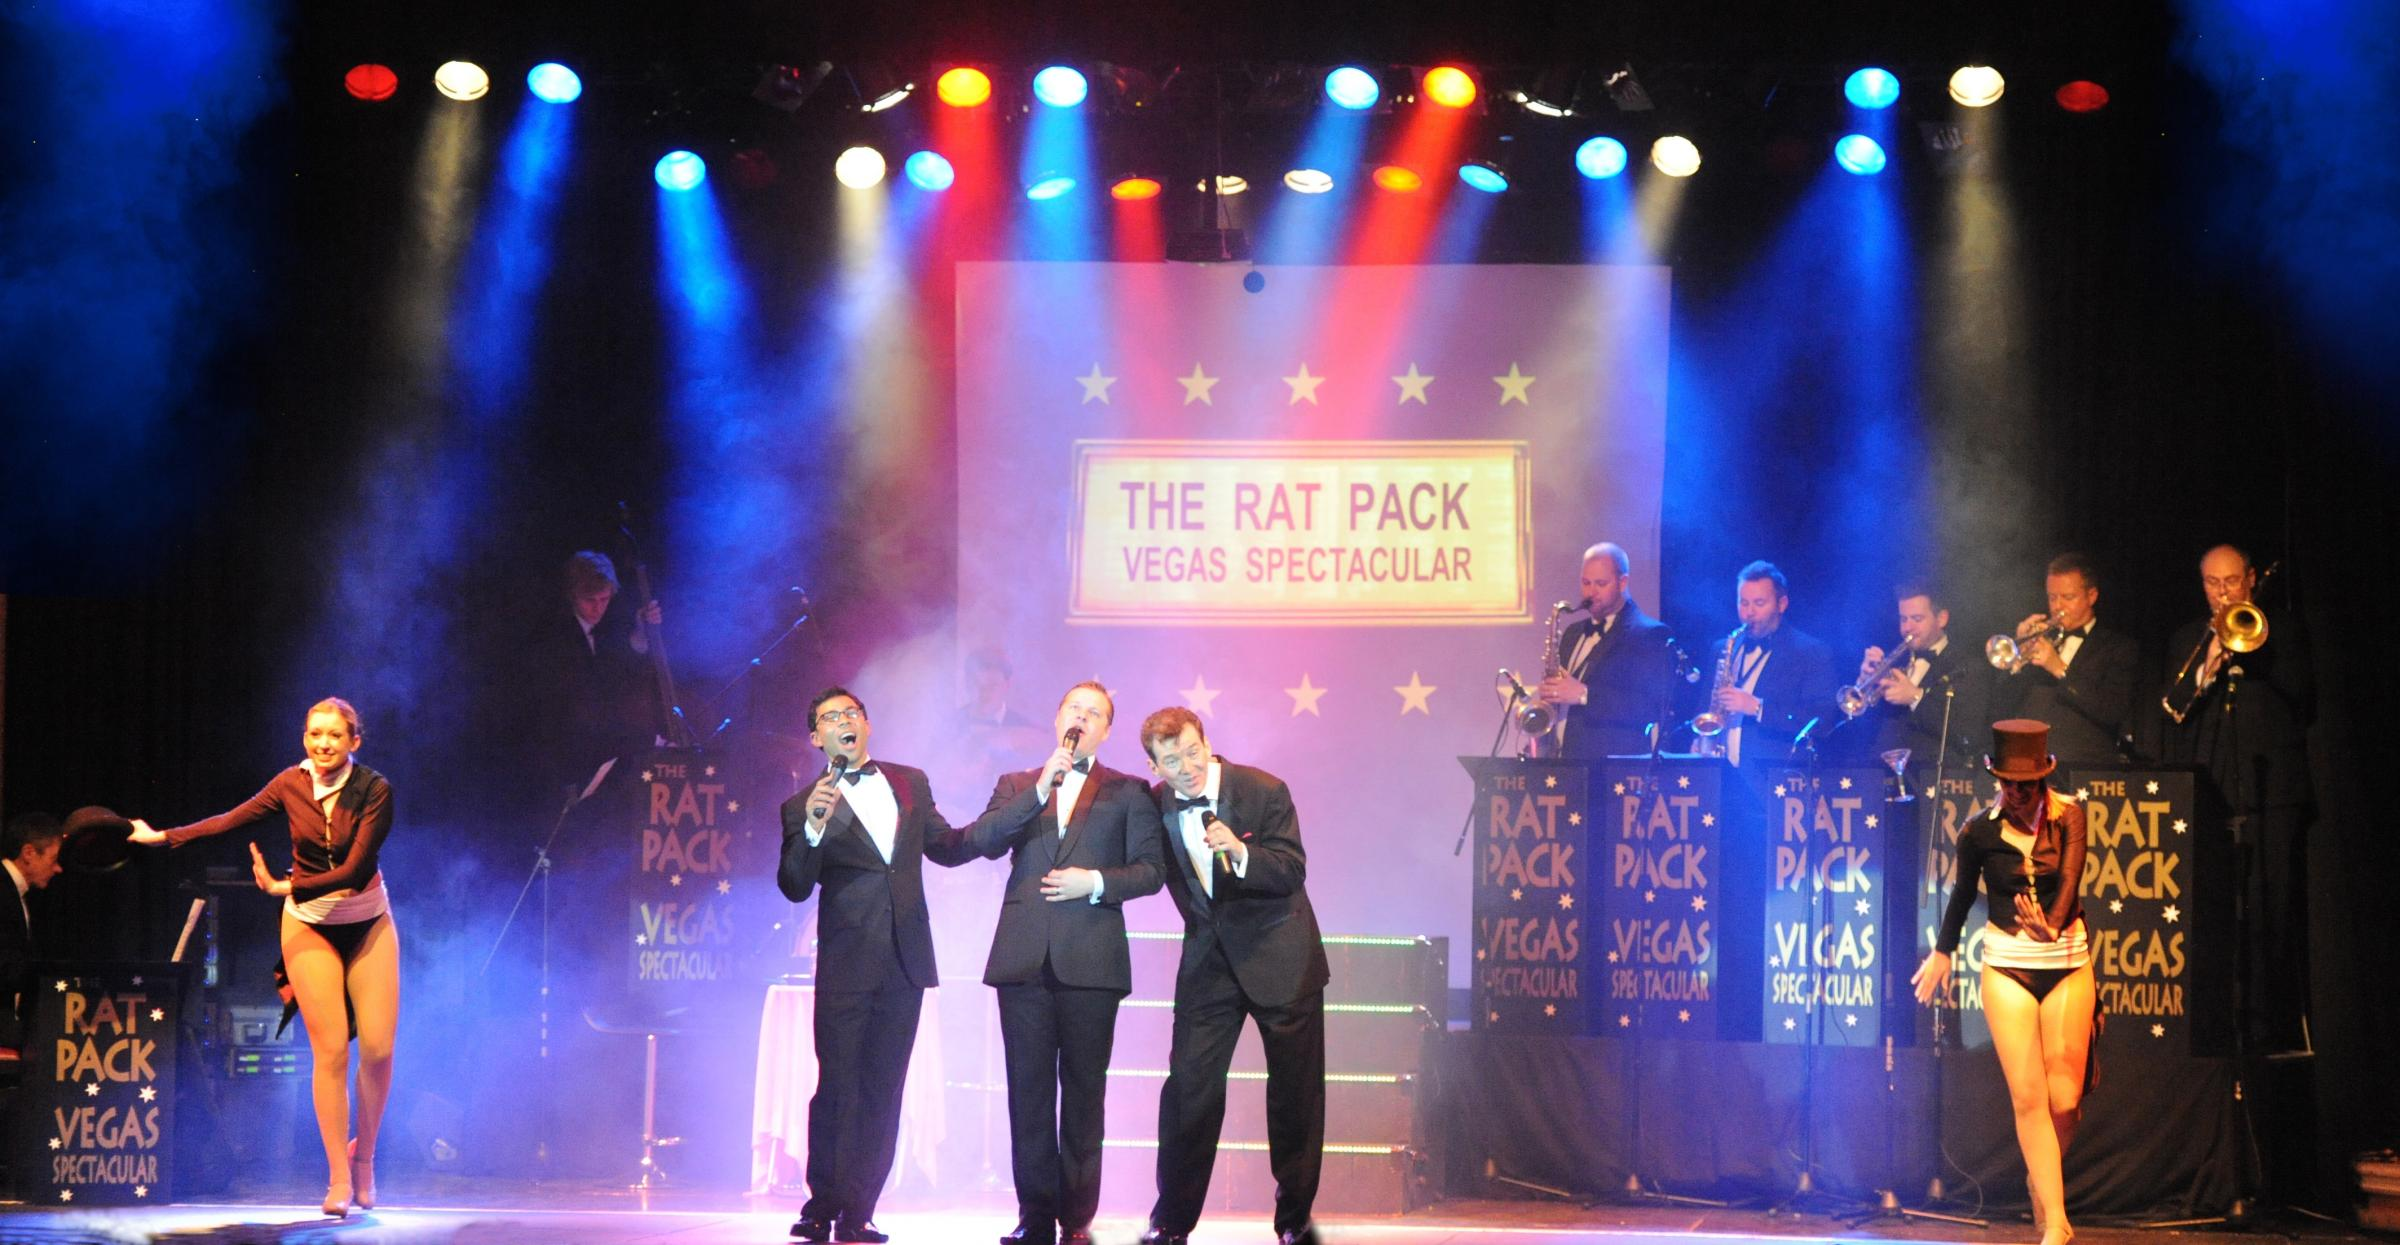 Rat Pack Las Vegas Spectaular is coming to the Thameside Theatre